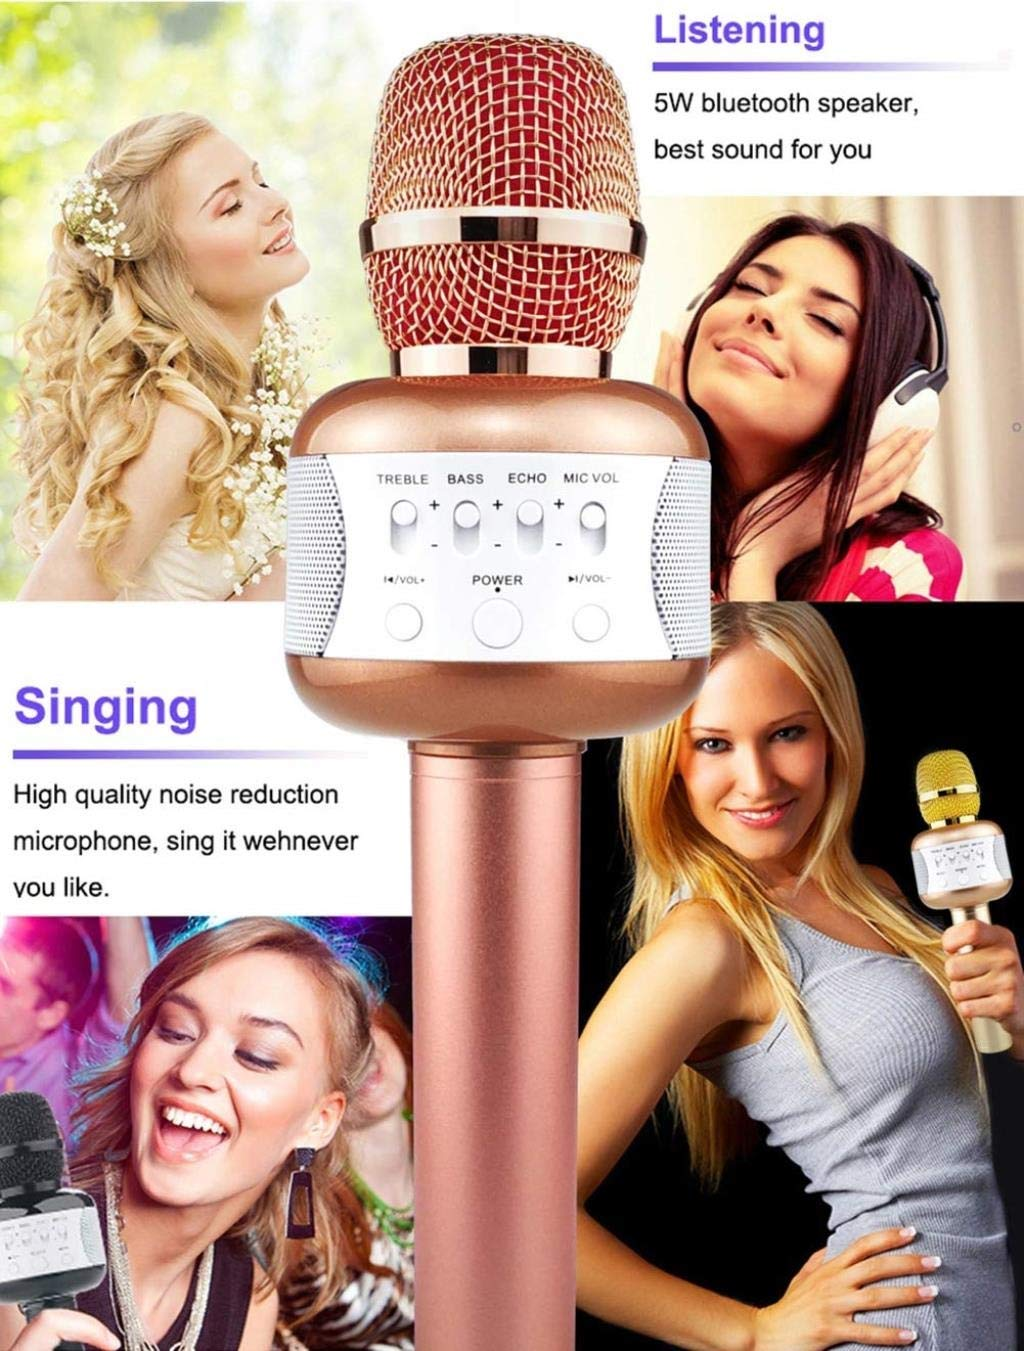 Rsiosle Wireless Bluetooth Karaoke Microphone with Mini USB Disco Lights Portable KTV Music Player Singing Mic Compatible with Android and iOS ( Color : Gold ) by Rsiosle (Image #4)